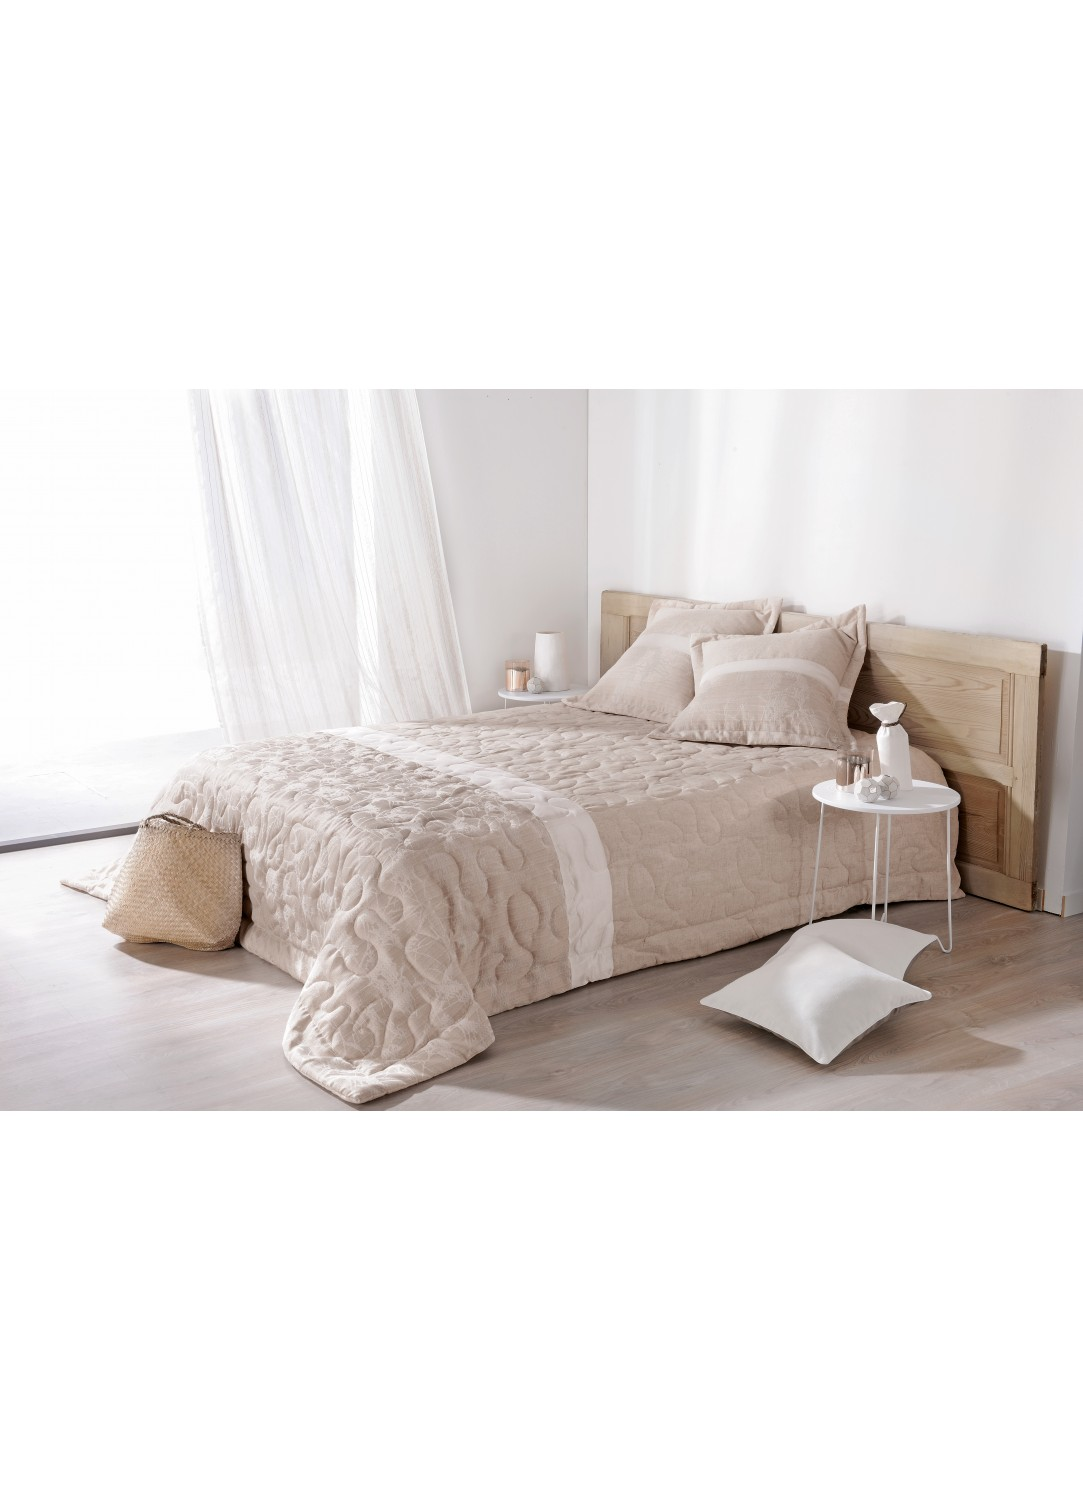 jet de lit ouat capri avec taie assortie beige homemaison vente en ligne couvertures. Black Bedroom Furniture Sets. Home Design Ideas